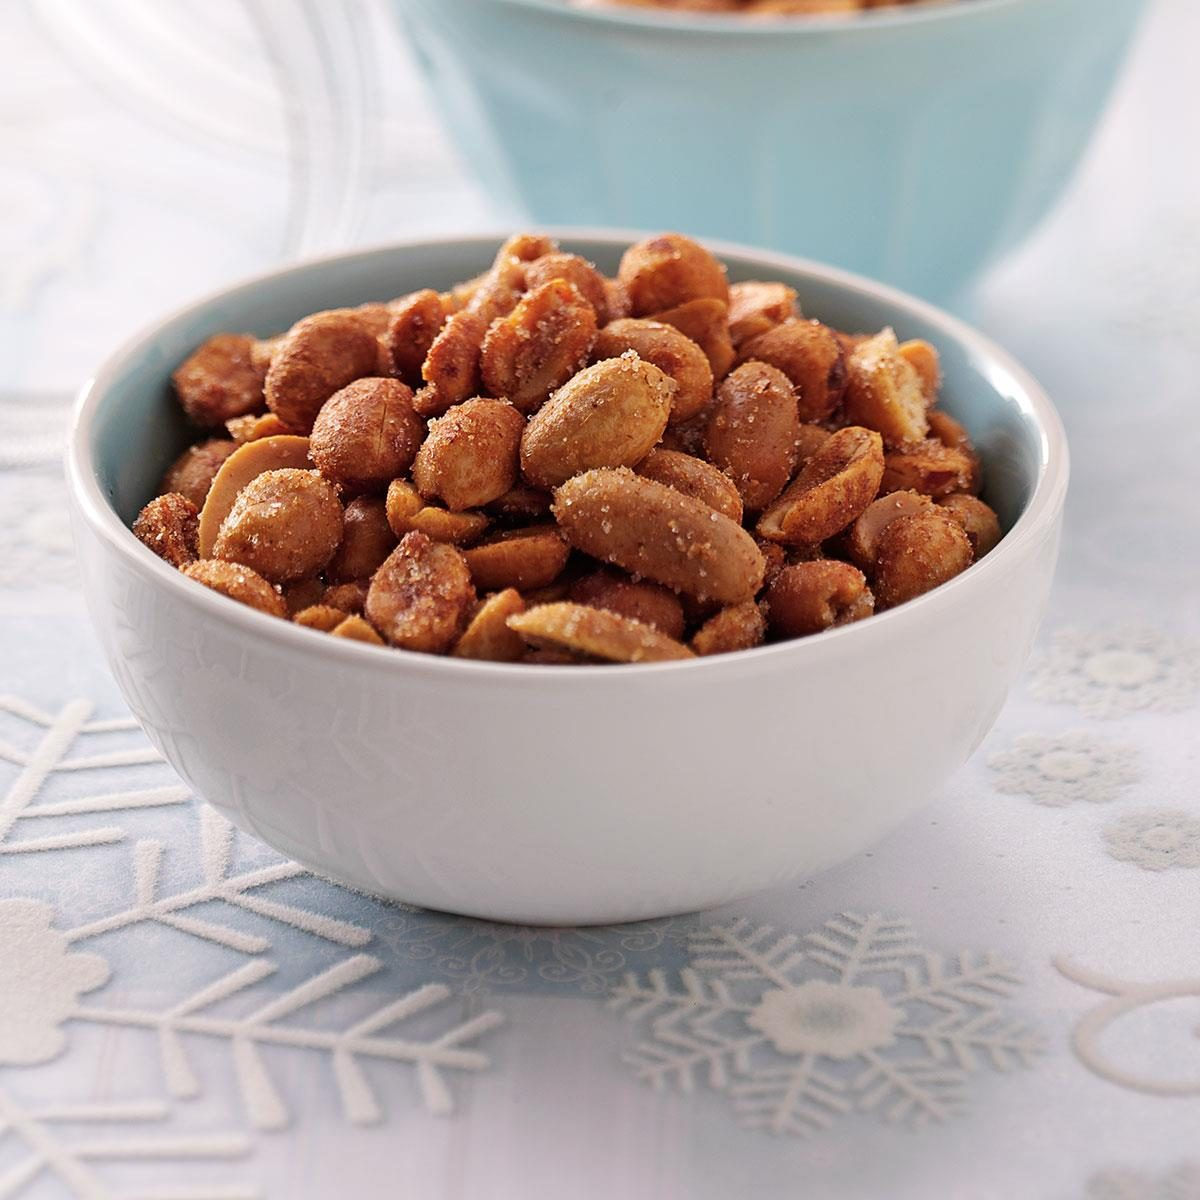 Spiced Peanuts Recipe